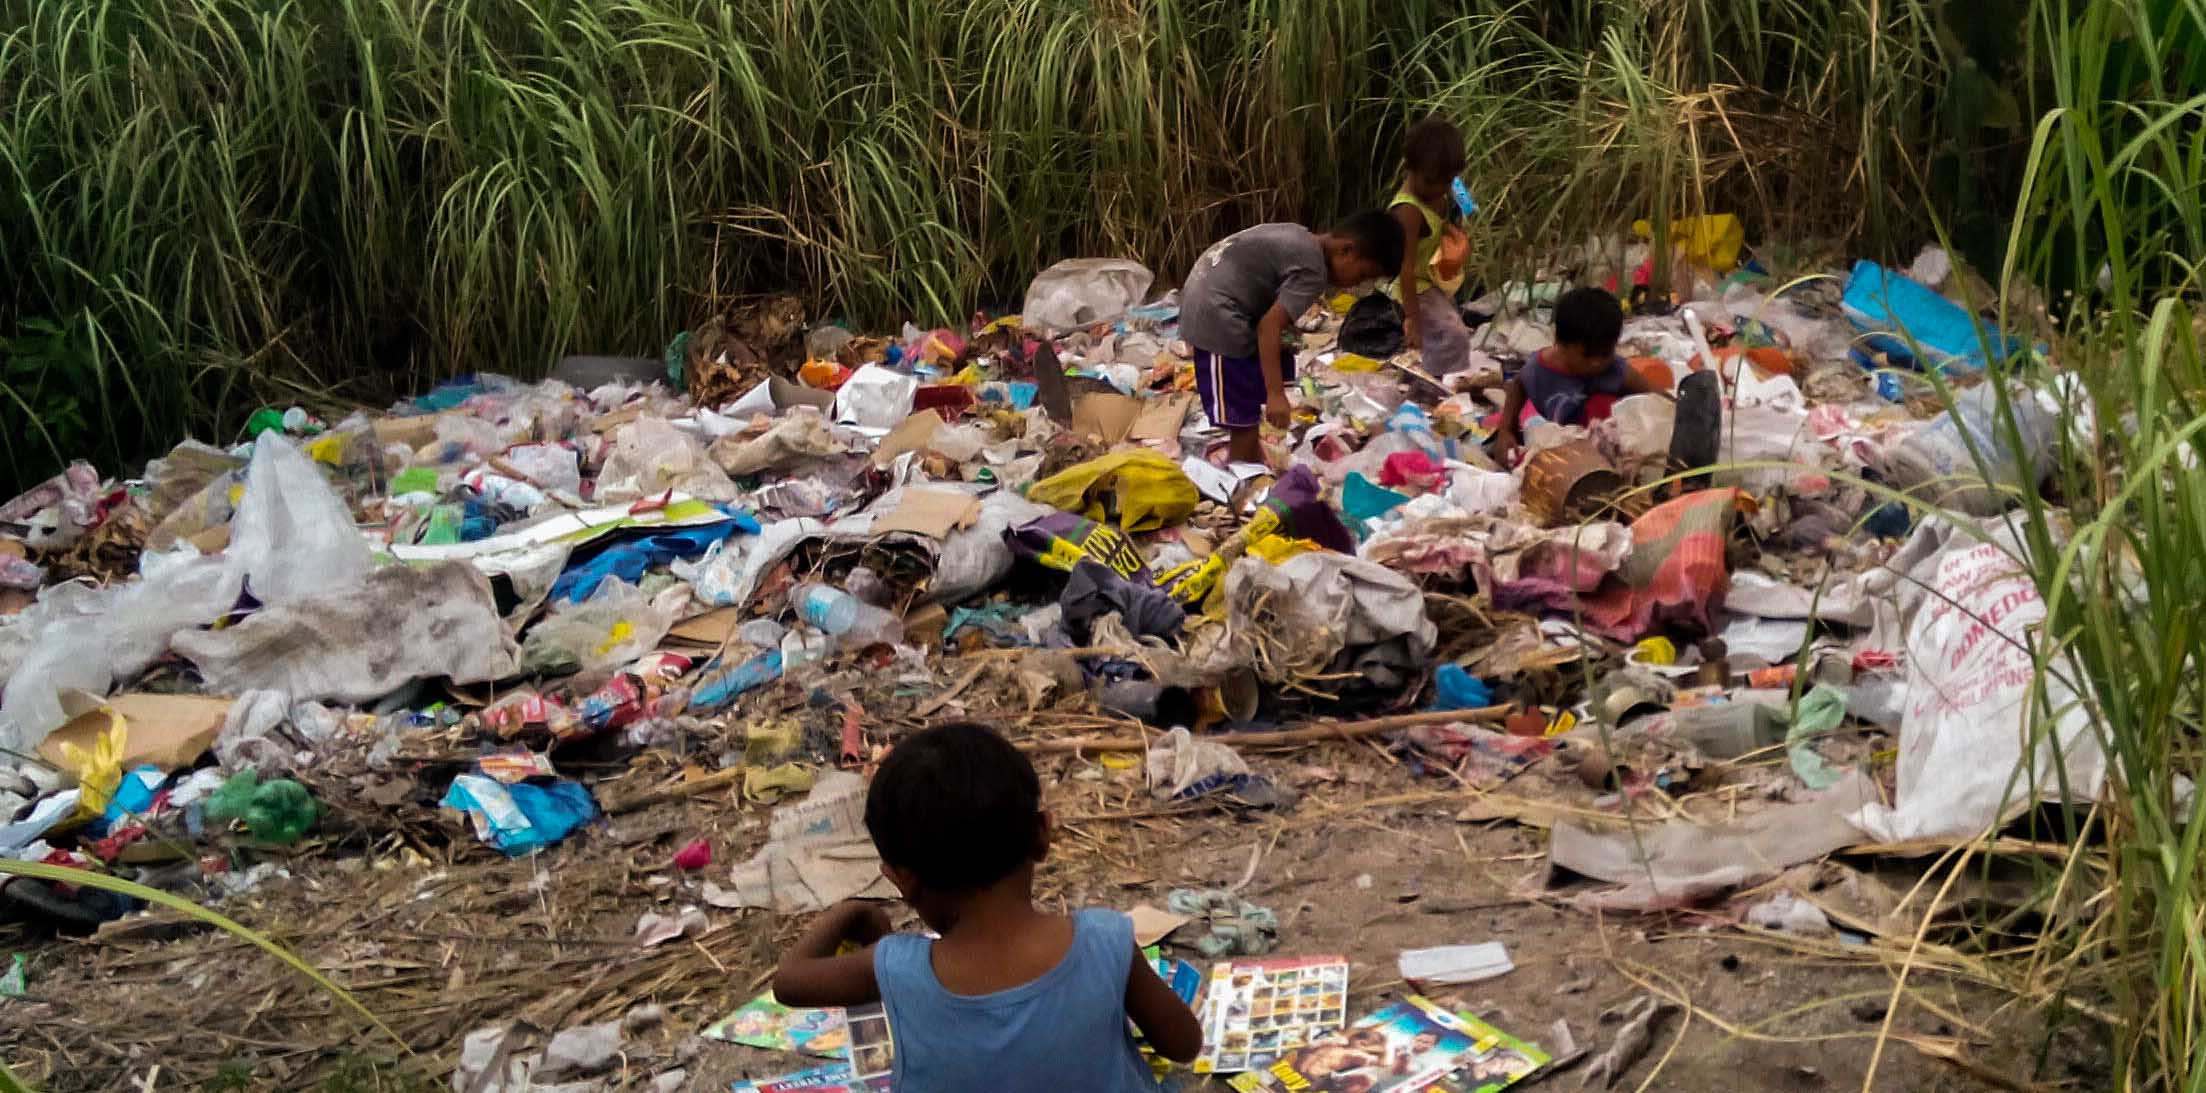 Kids playing on the trash